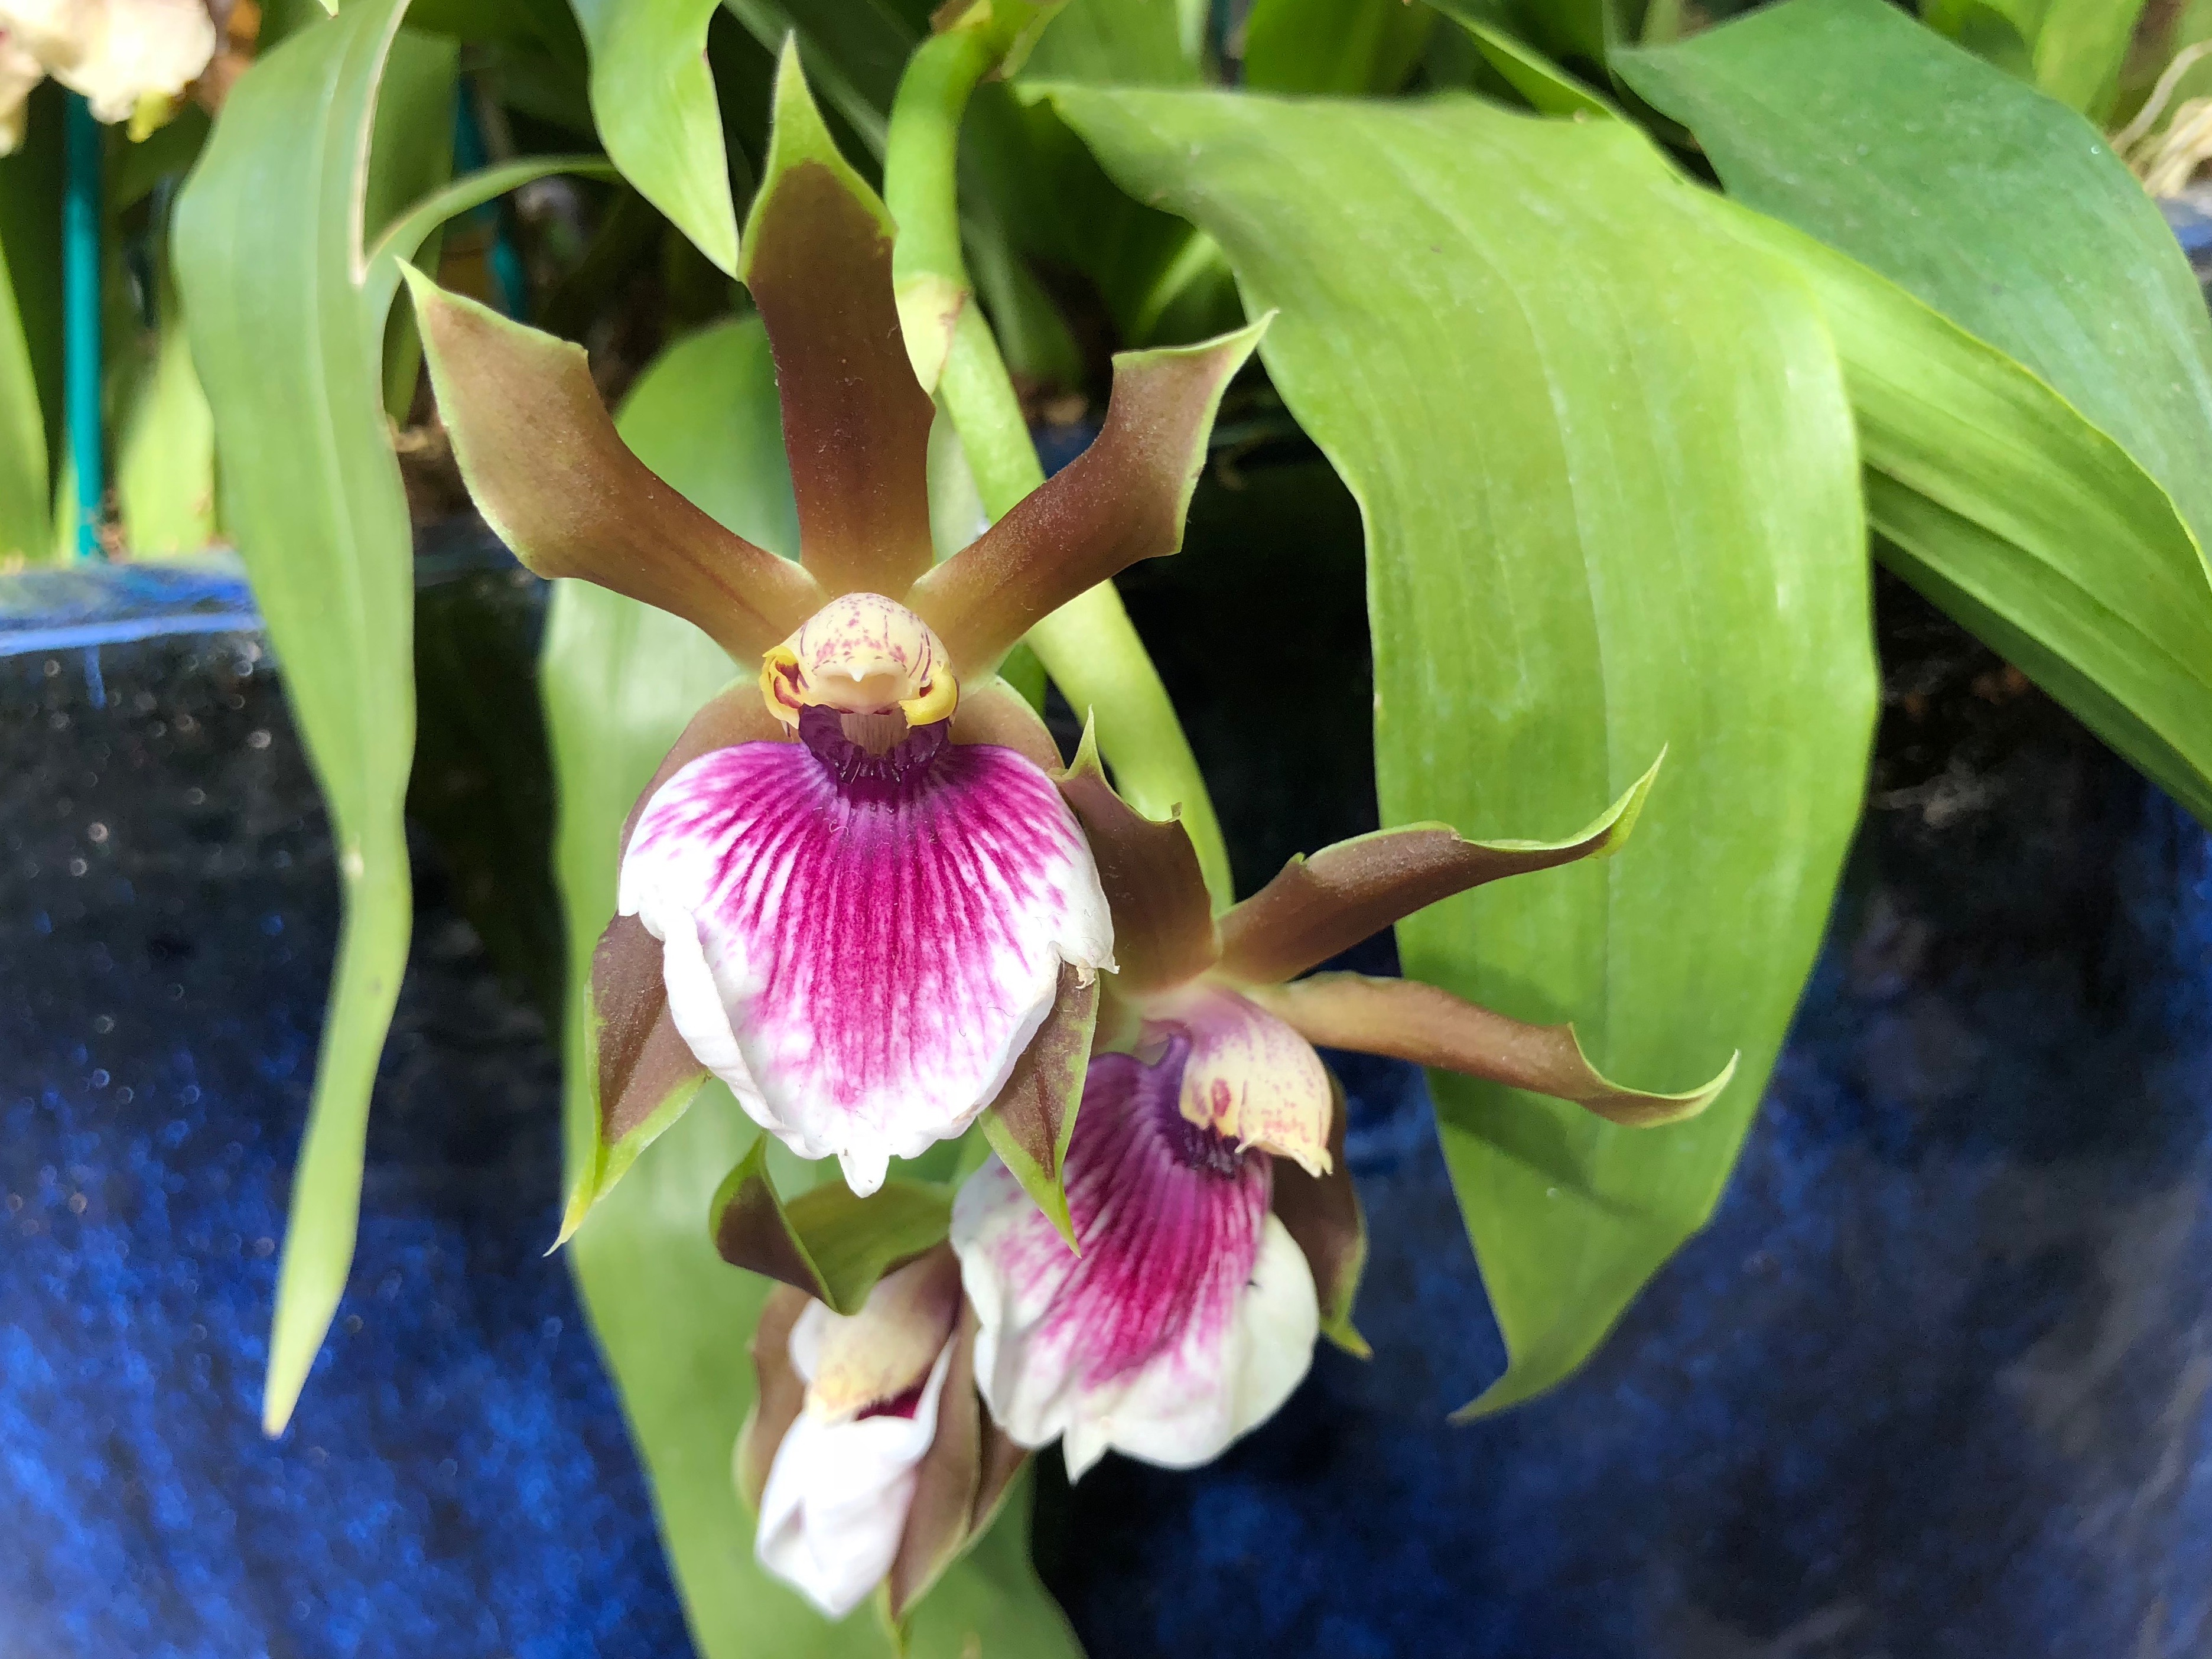 Zygopetalum related orchid